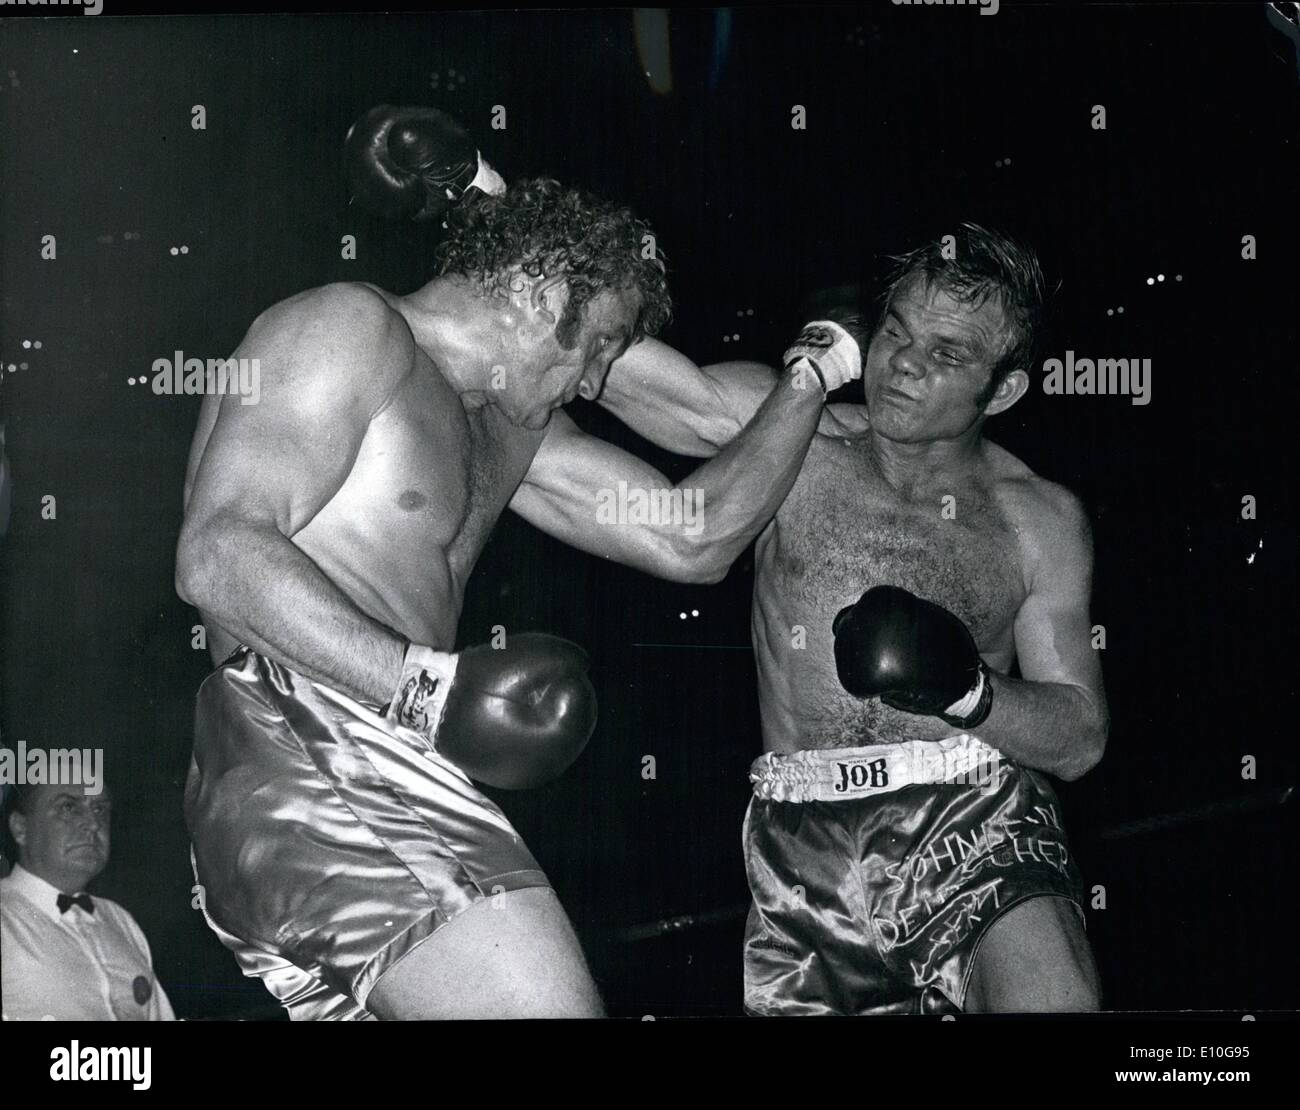 Oct. 10, 1972 - Joe Bugner Wins European Heavyweight Title. Britain's Joe Bugner won the European Heavyweight title, when he beat the holder, Jurgen Blin, of West Germany in the 8th. round, at Wembley. Photo Shows:- Joe Bugner (left) and Jurgen Blin, during the fight. - Stock Image